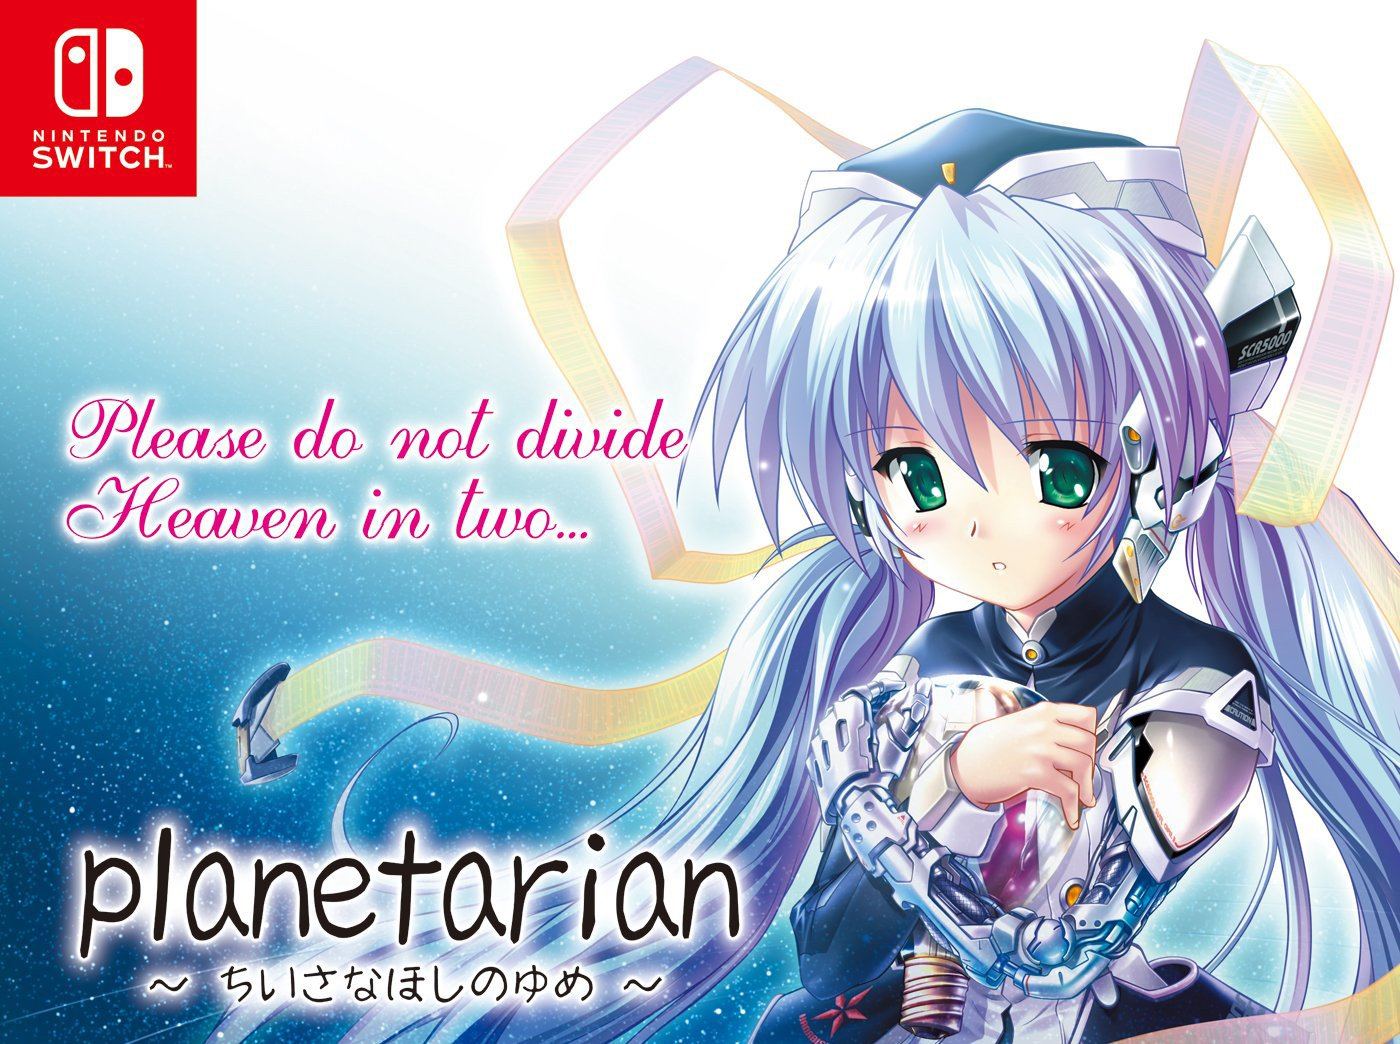 Planetarian coming to Switch in Spring 2019